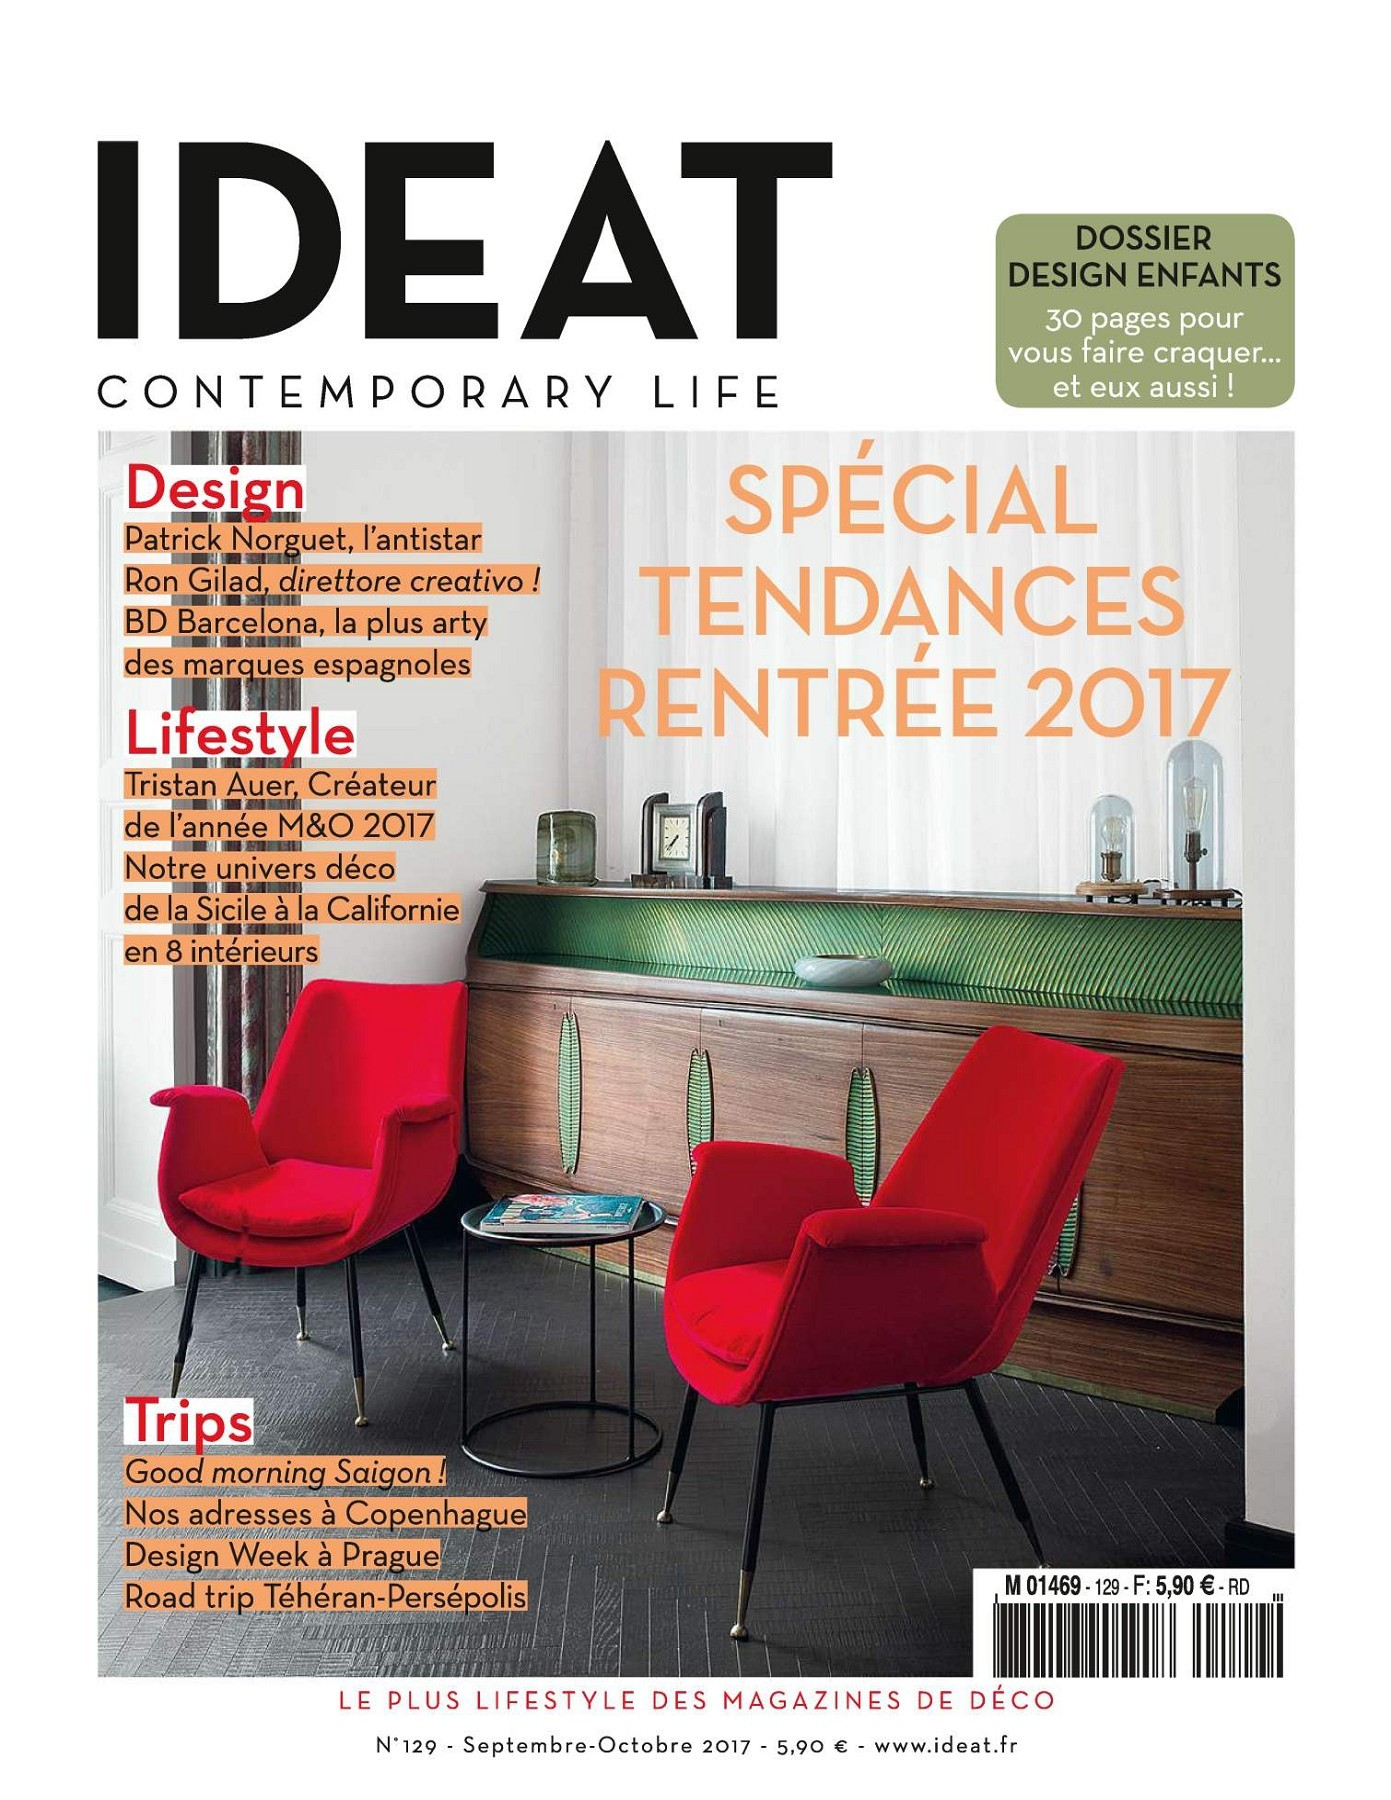 Ateliers Lofts Et Associés Biarritz ideat france__septembre-octobre_2017-flip book pages 1-50